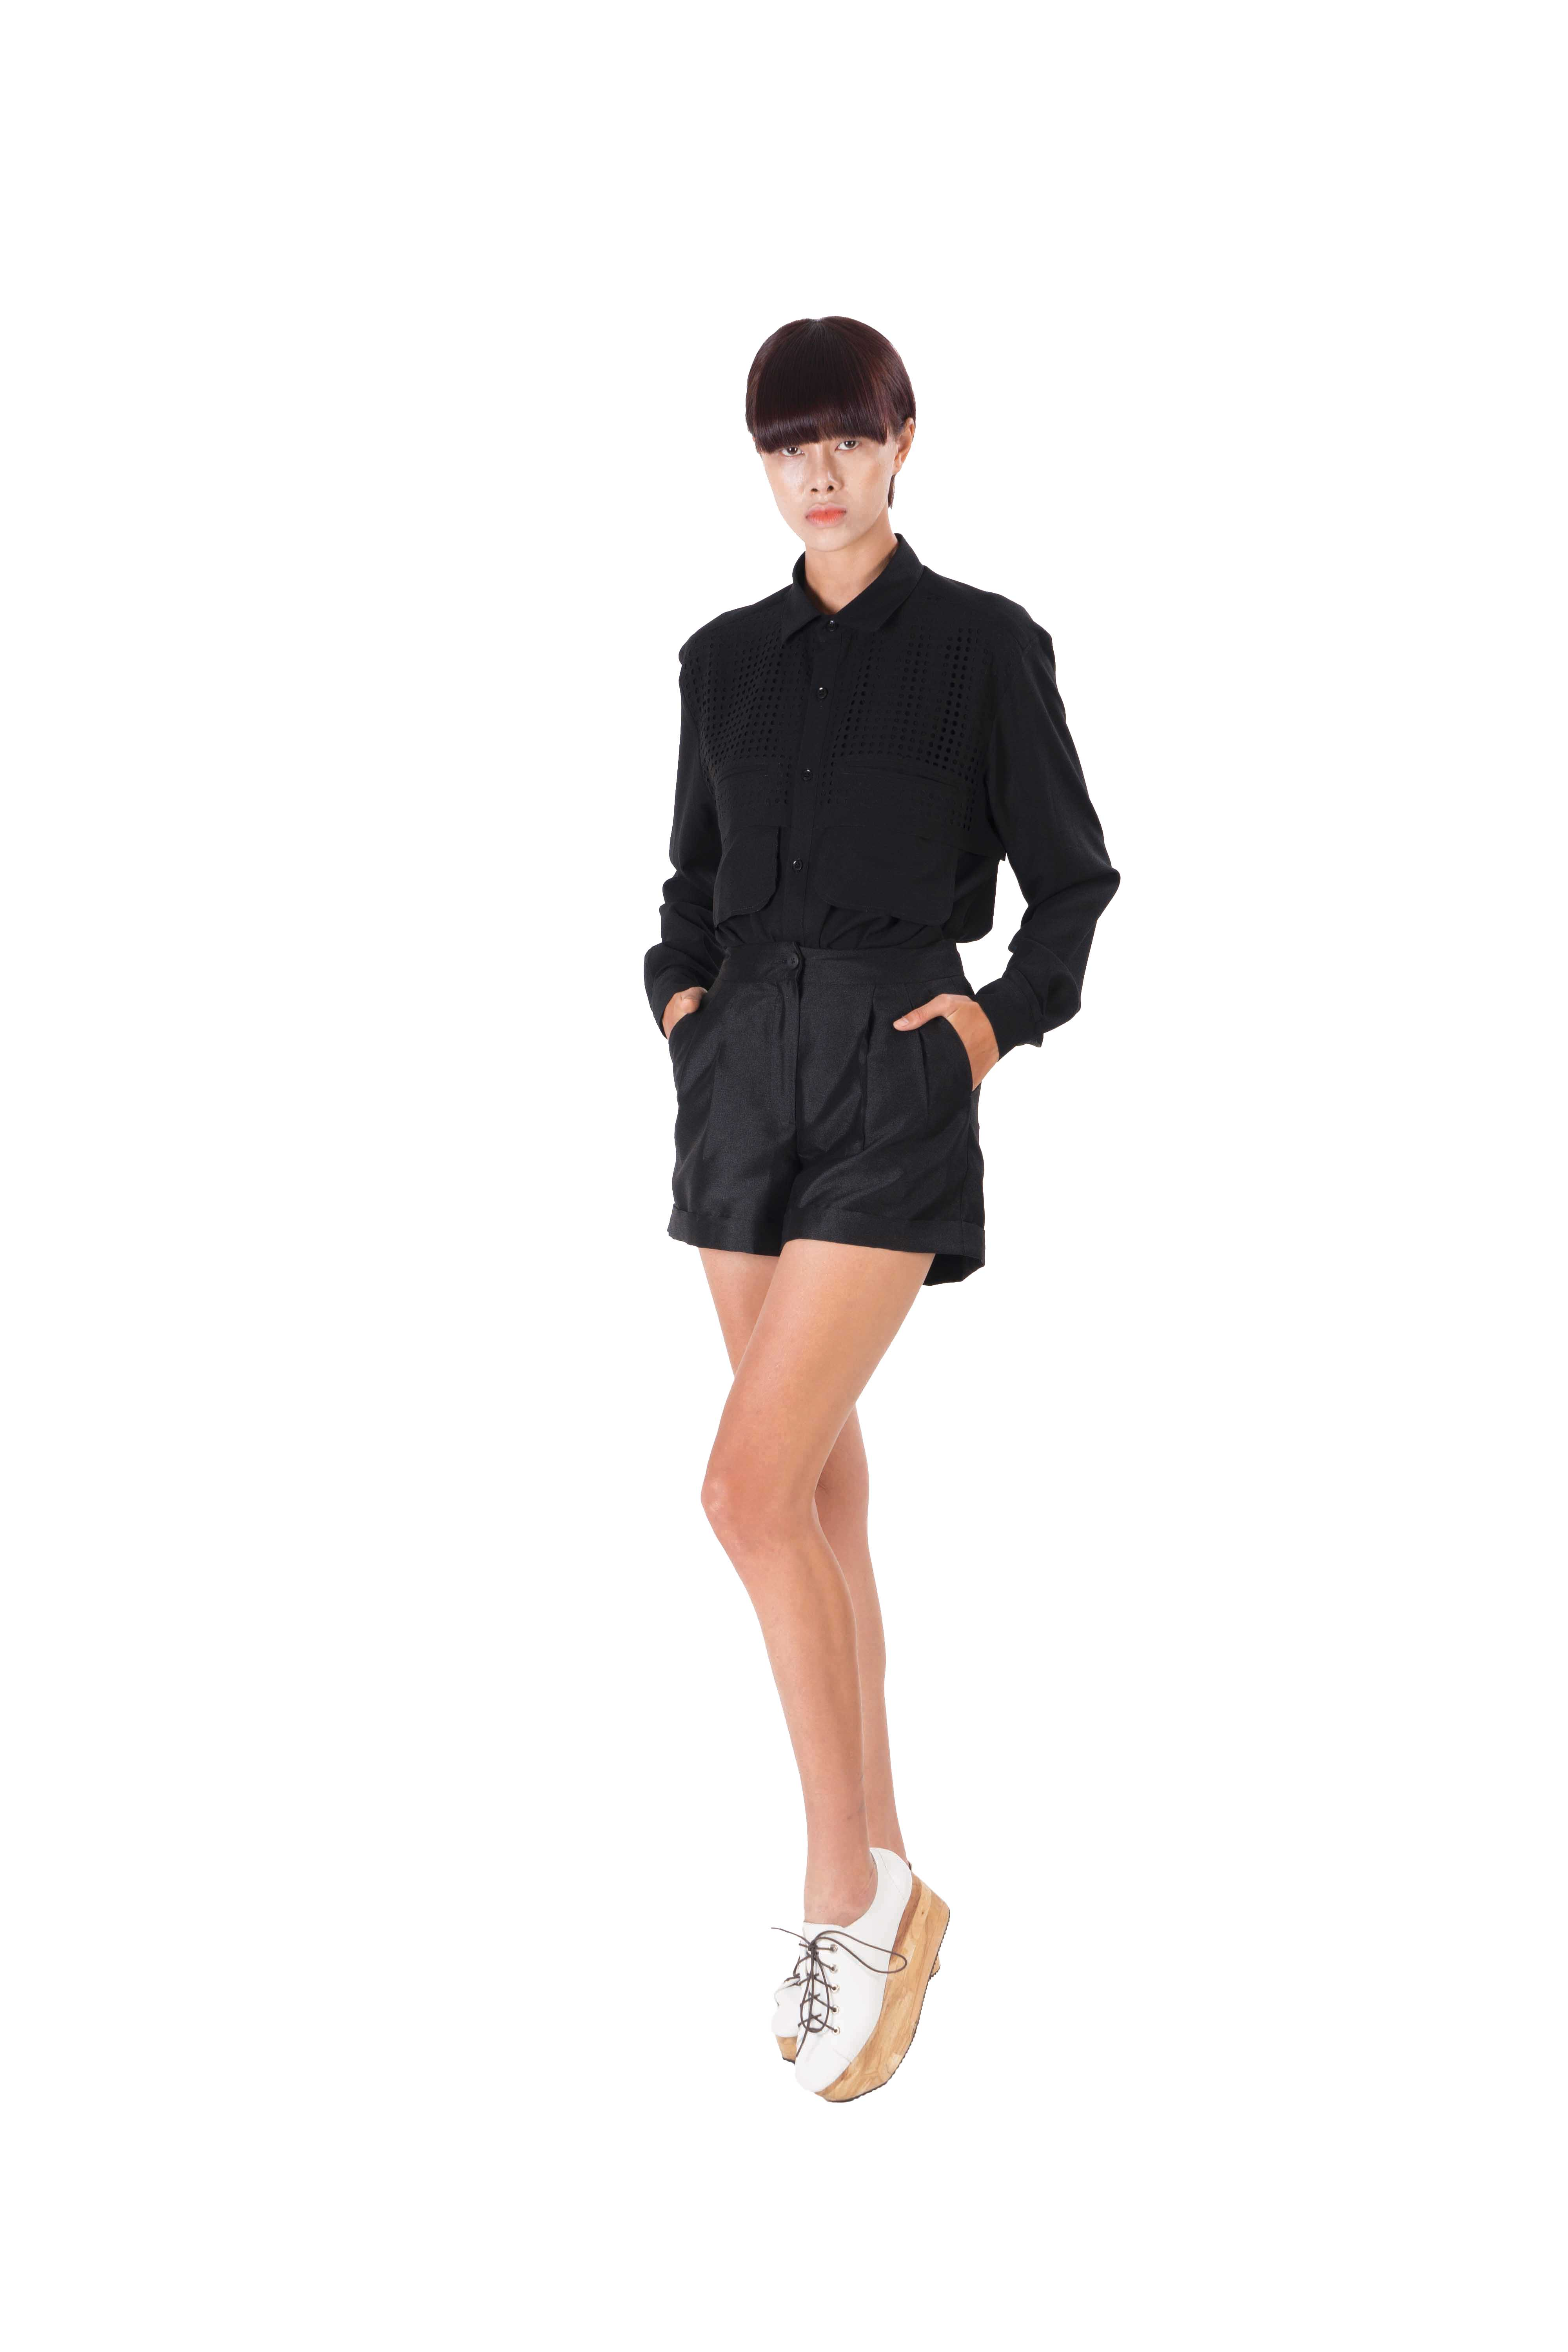 Black silk blend shirt with front lazer cut out pocket  detailing